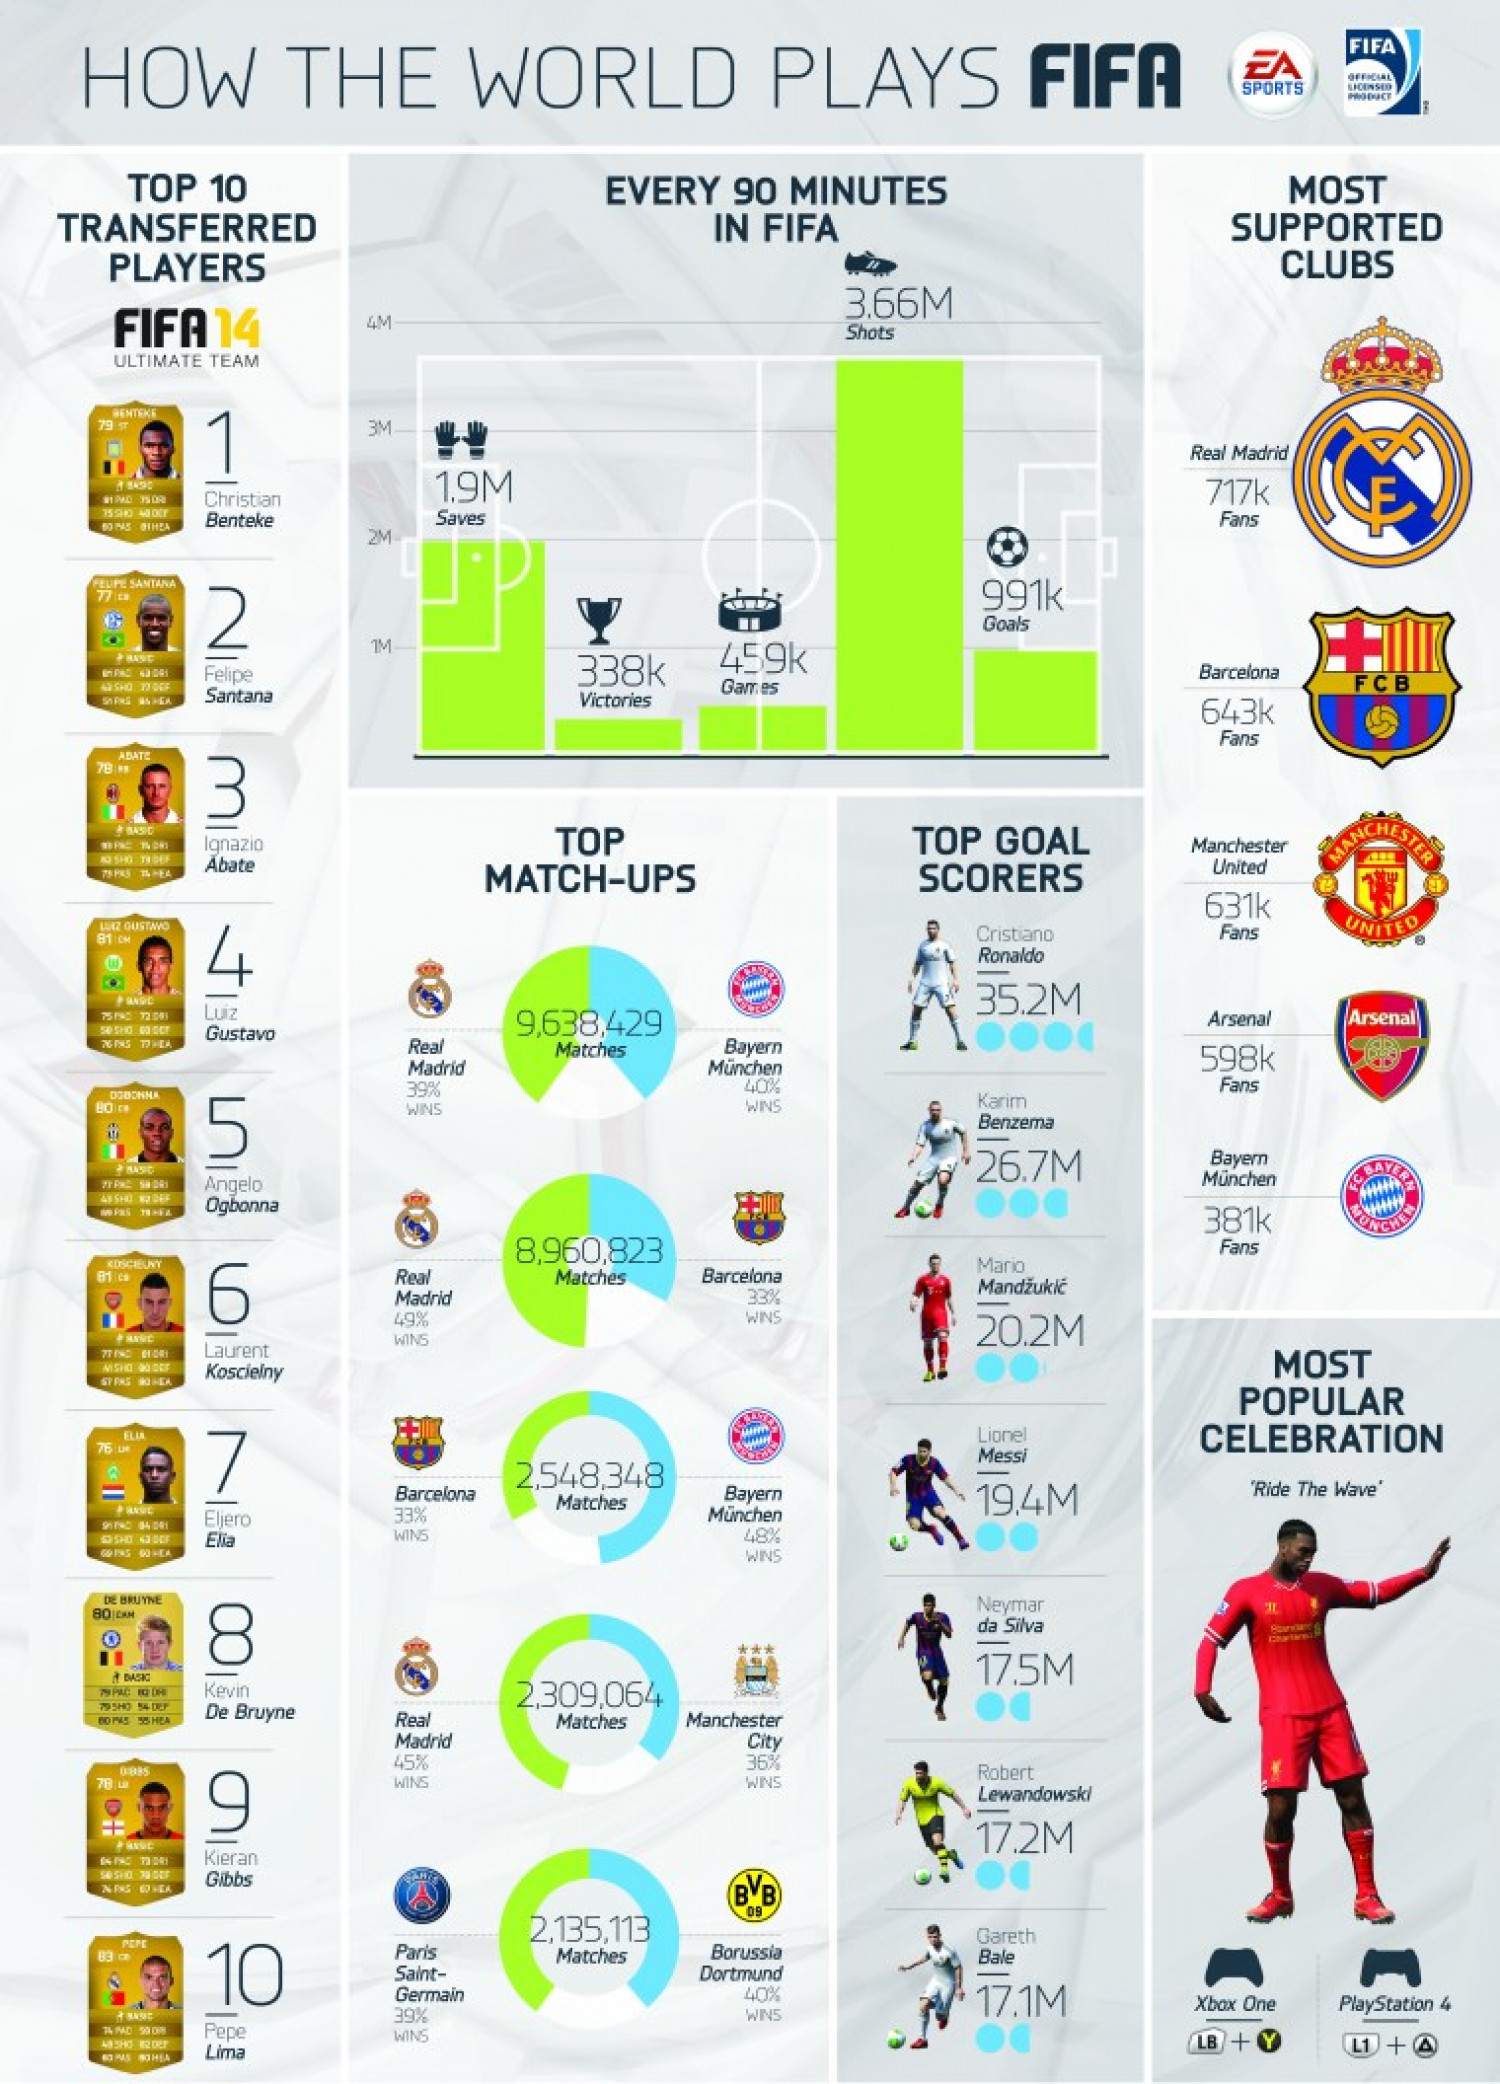 How the world plays FIFA 2014 Infographic